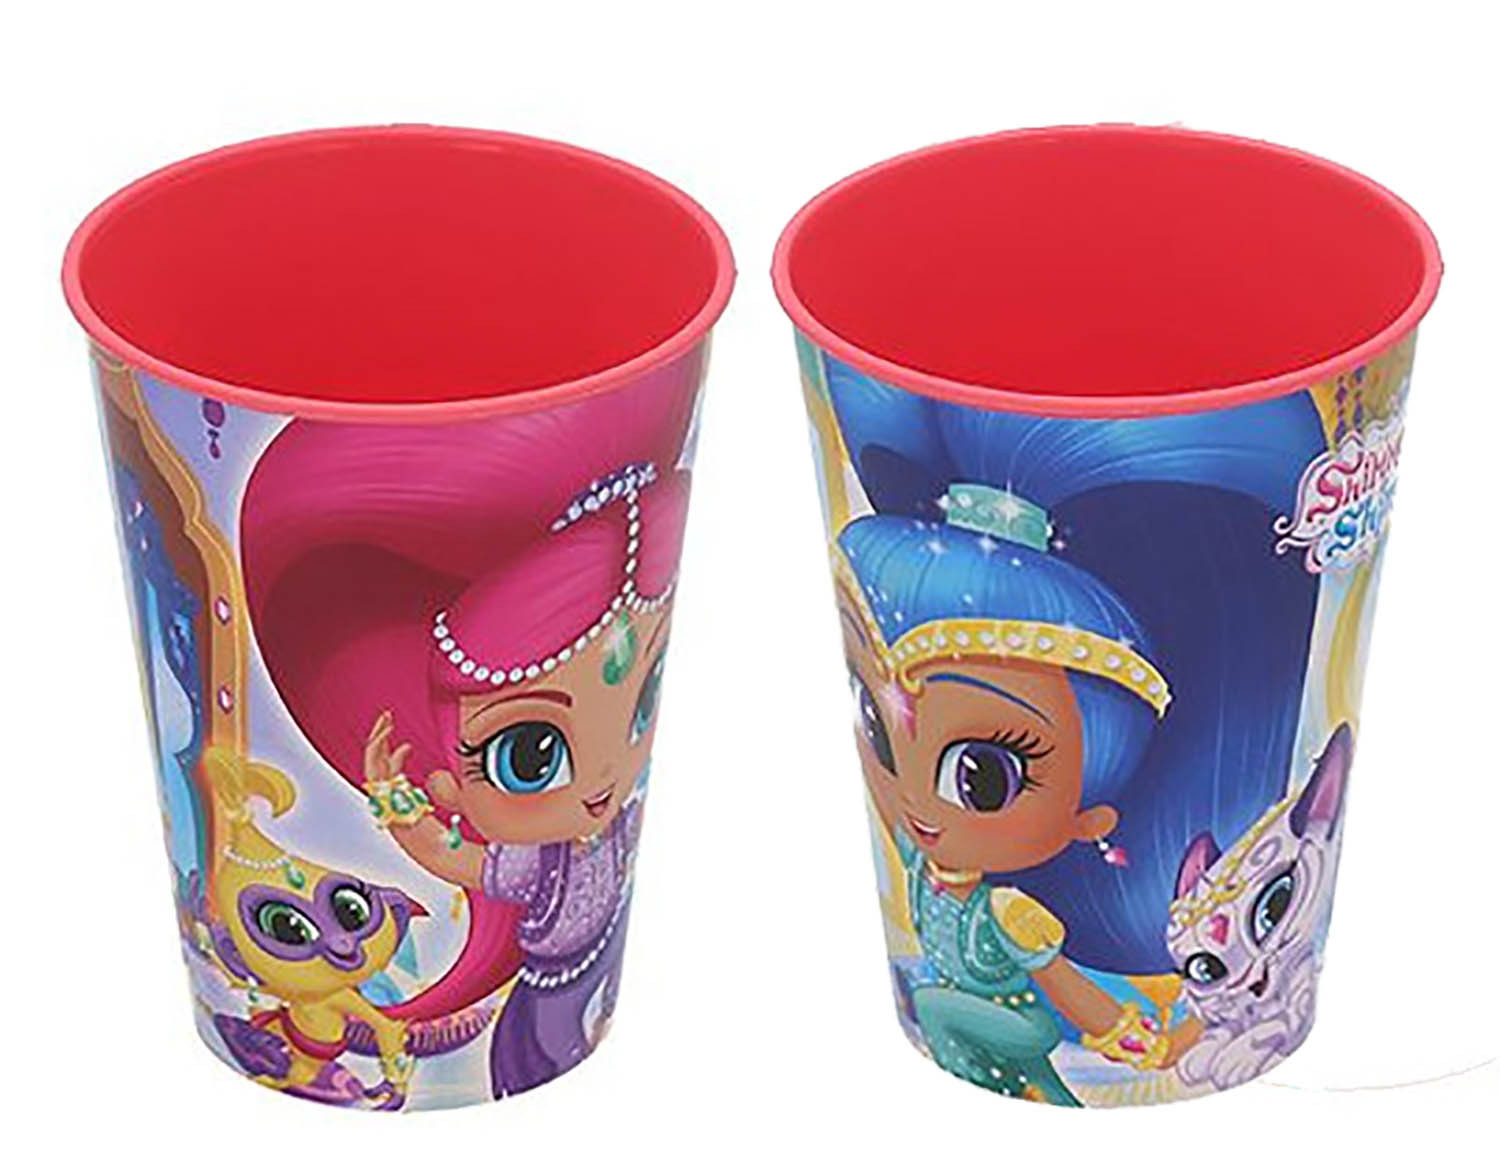 Glass, Hard Plastic, Reusable, for Kids, Pink, 260ML. Model Shimmer & Shine, with style Child - Home and More